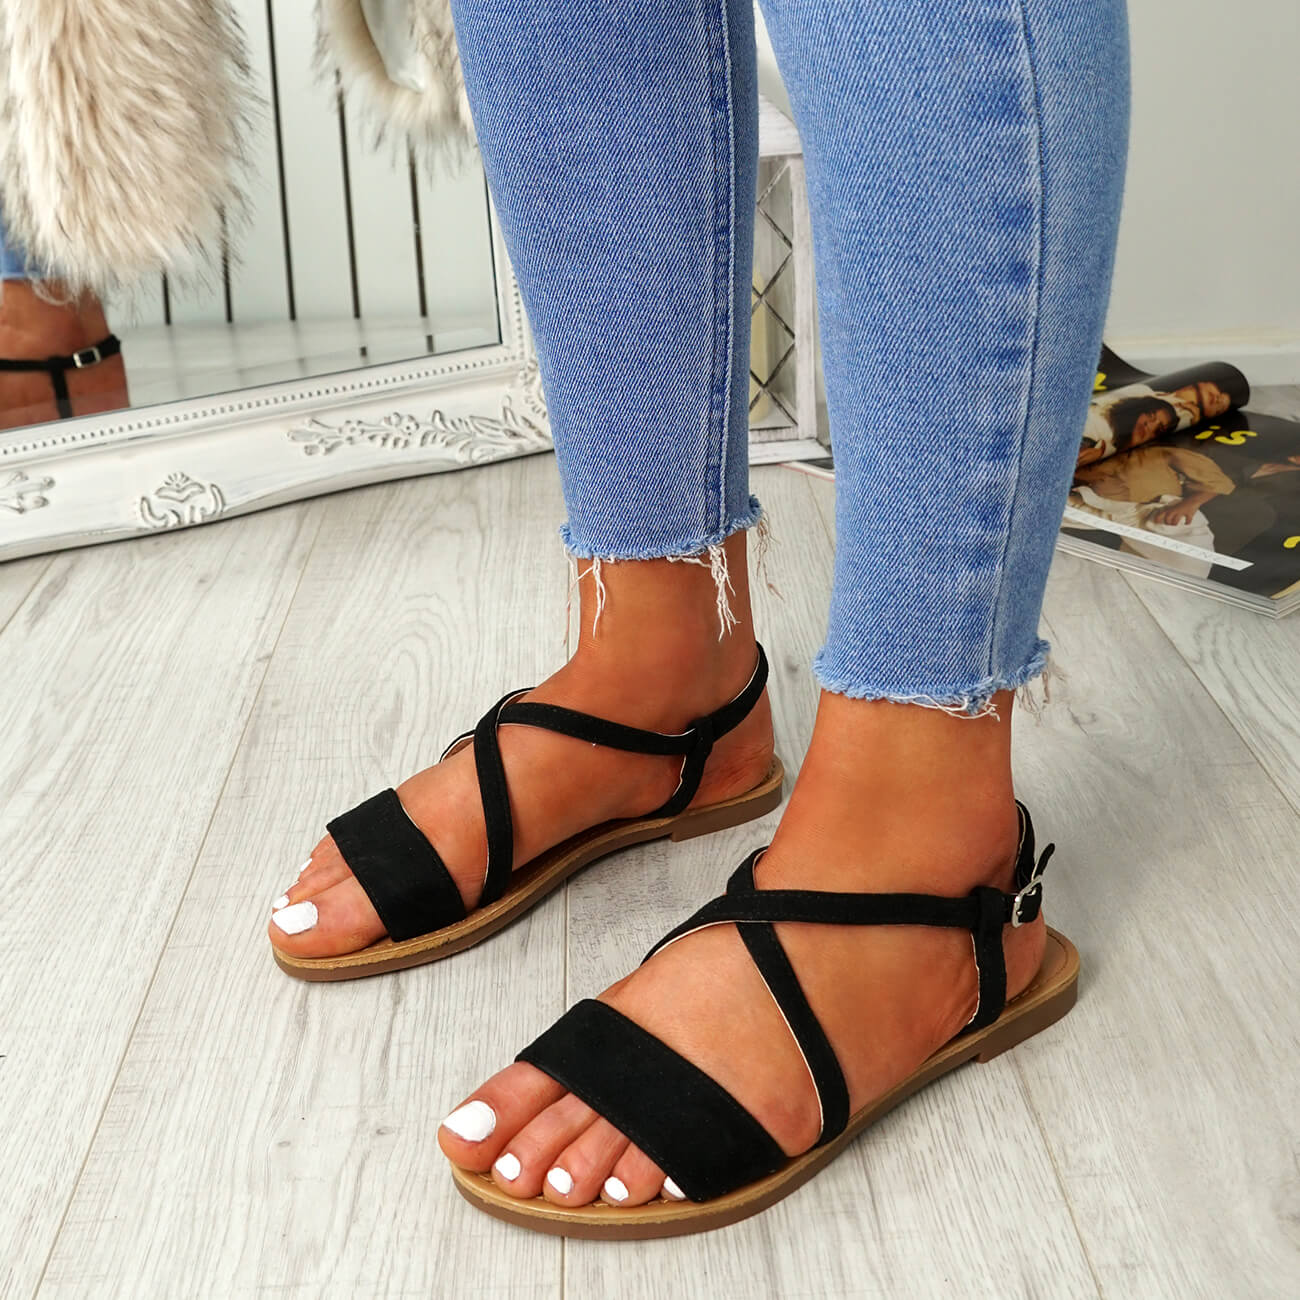 WOMENS-LADIES-ANKLE-STRAP-PEEP-TOE-FLAT-SANDALS-COMFY-SUMMER-SHOES-SIZE thumbnail 8